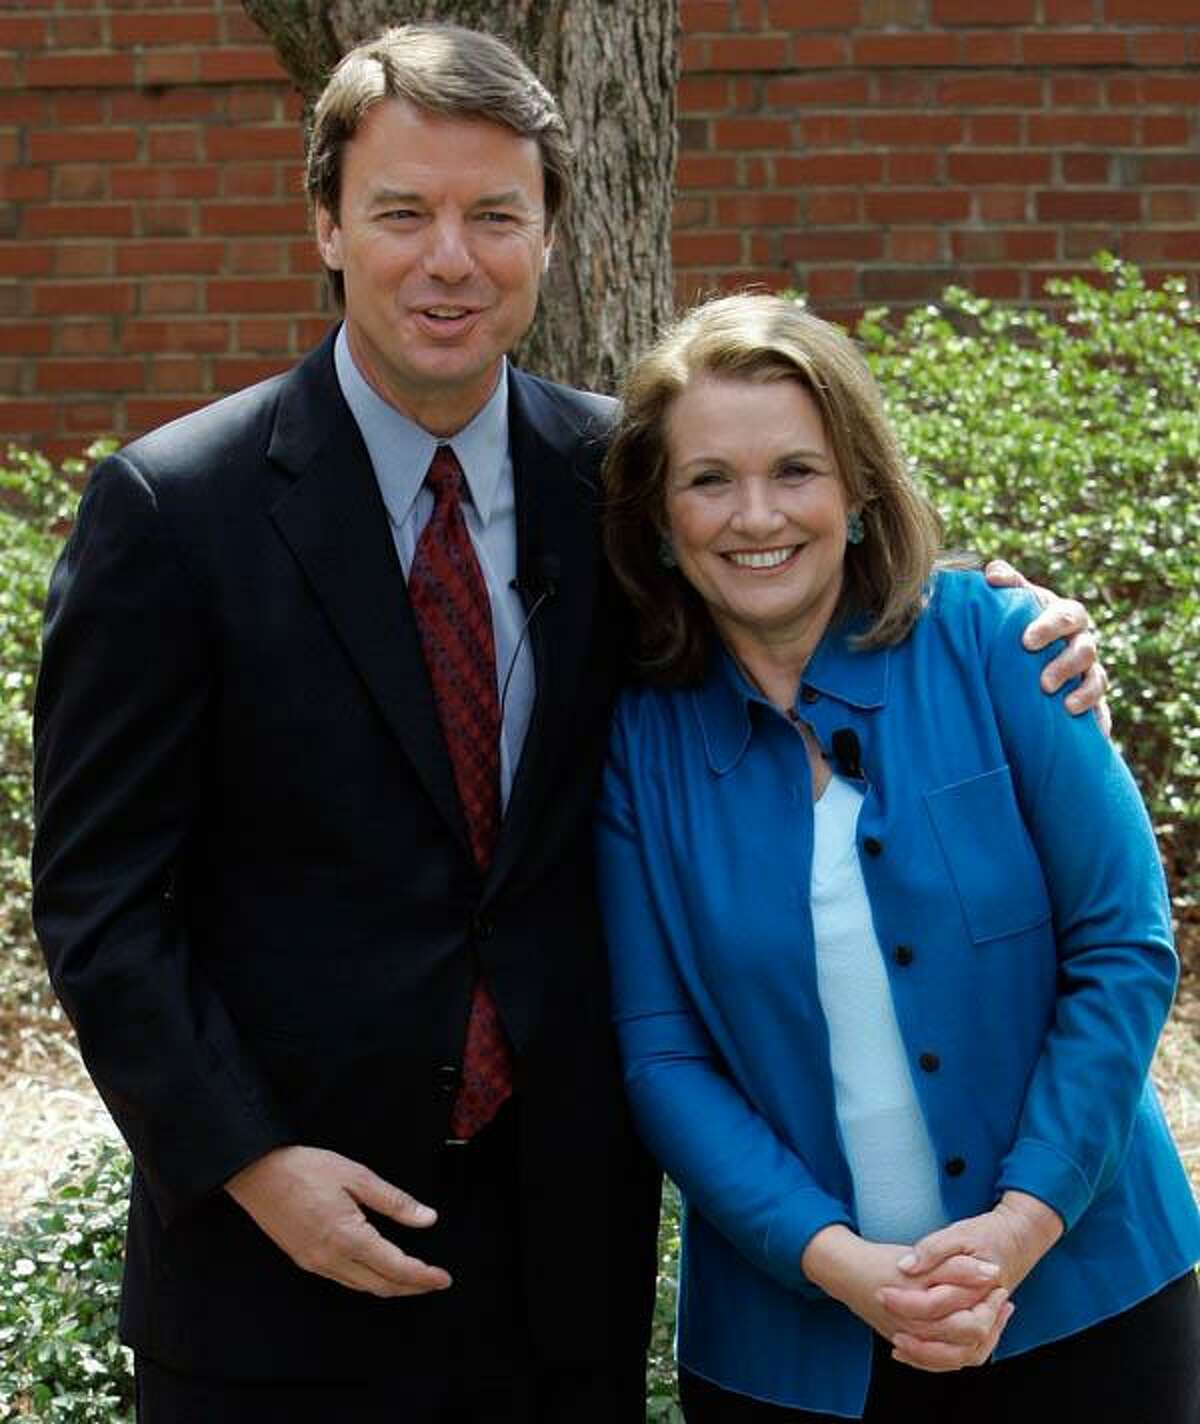 This 2007 file photo shows two-time presidential candidate John Edwards and his wife, Elizabeth, during a news conference in Chapel Hill, N.C. Elizabeth Edwards separated from her husband after a tumultuous three years in which the couple's marital troubles became tabloid fodder. Associated Press